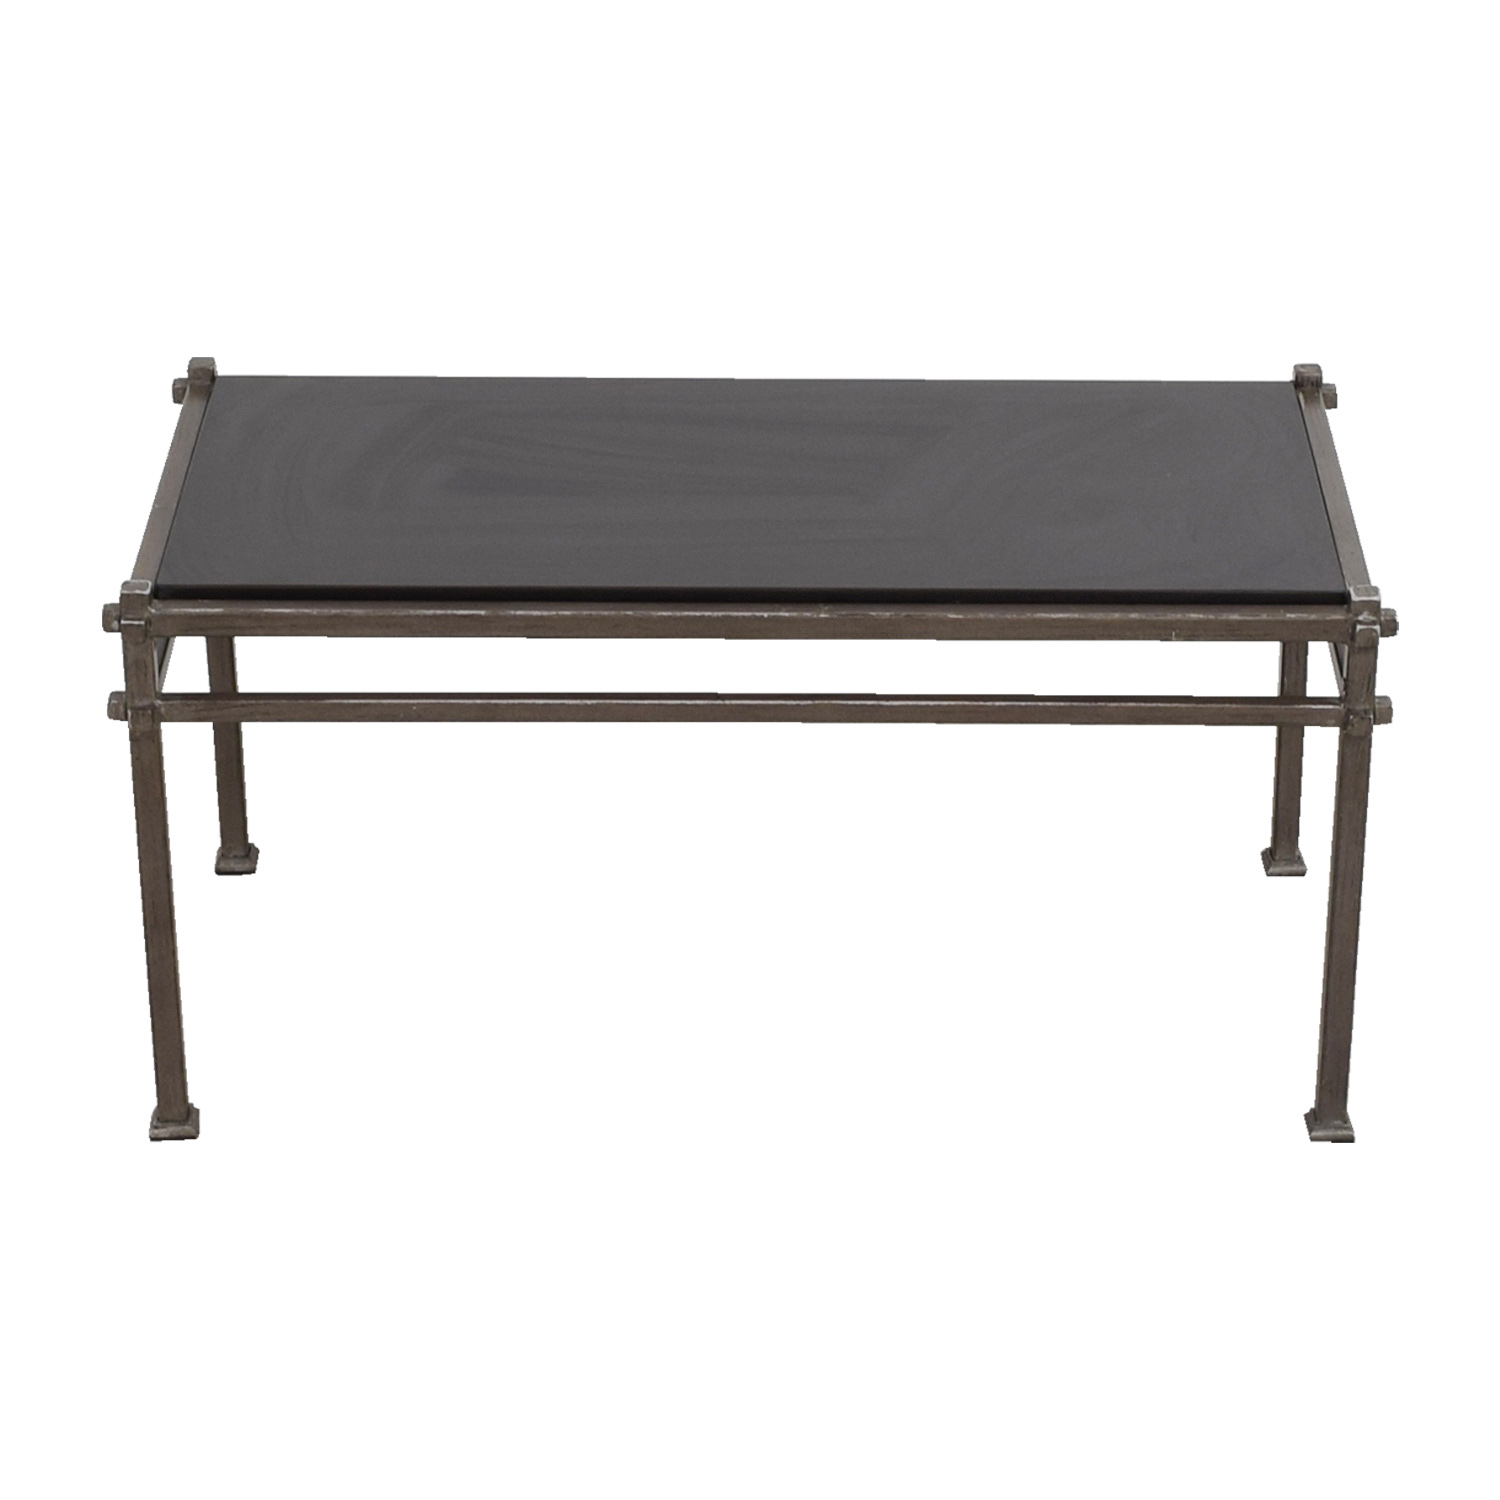 Pier 1 Imports Industrial Black Marble and Bronze Frame Coffee Table / Tables